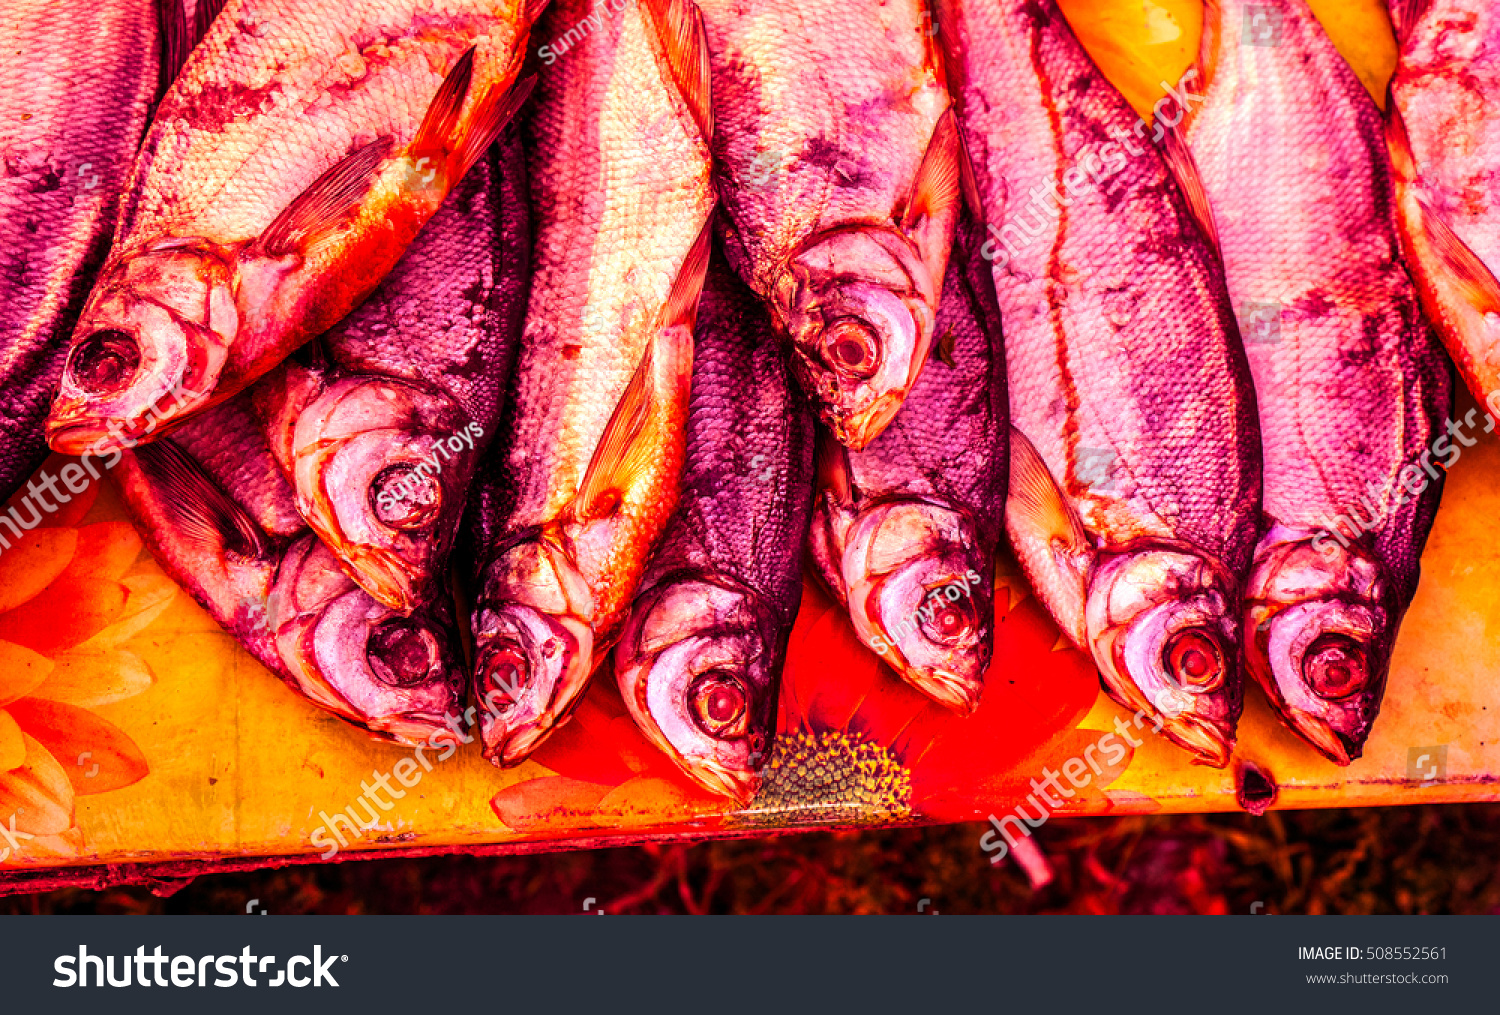 Red Dried Fish On Table Toned Stock Photo (Royalty Free) 508552561 ...